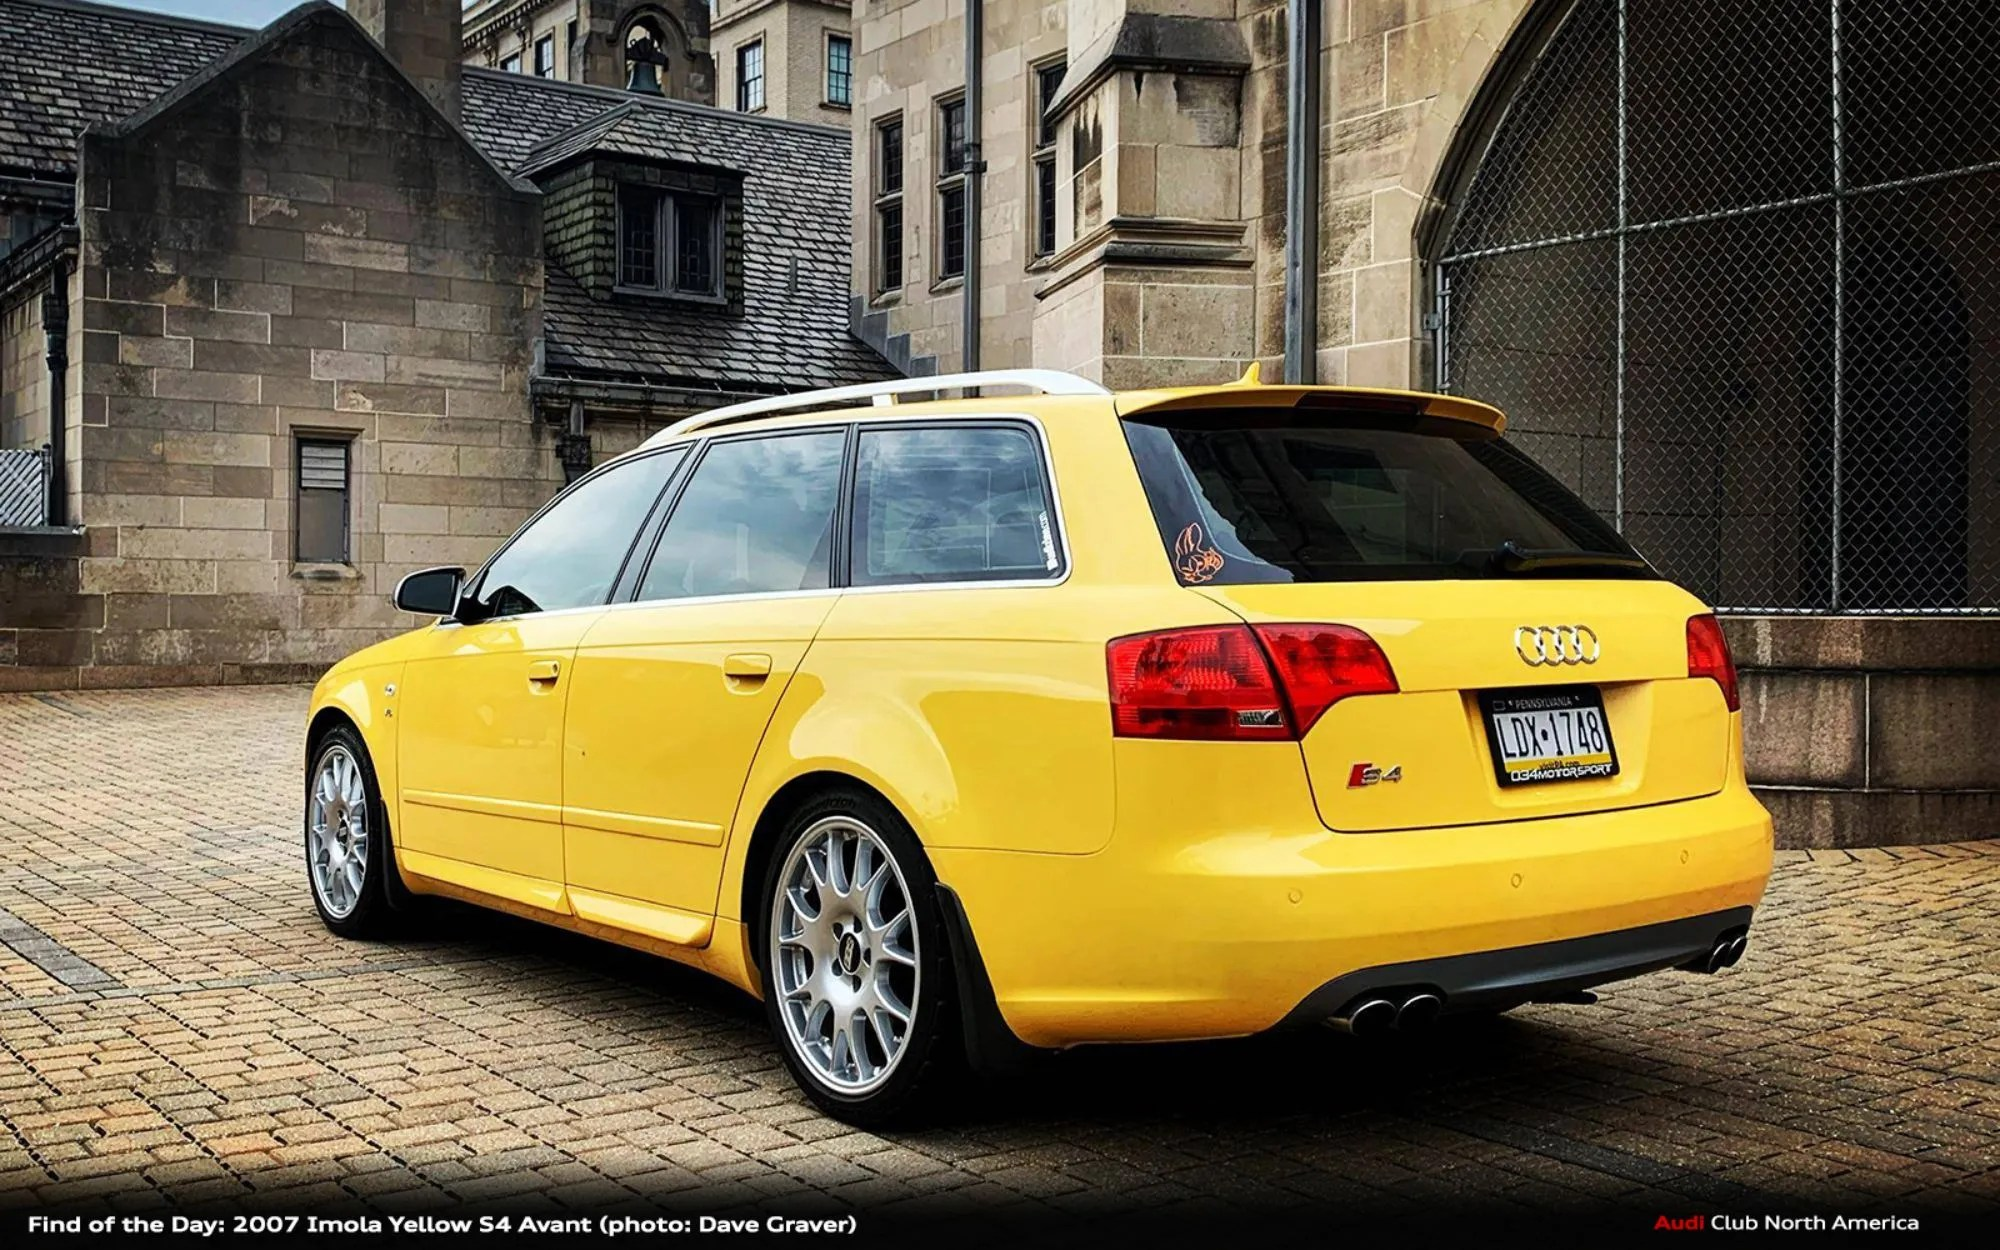 Find of the Day: 2007 Imola Yellow S4 Avant